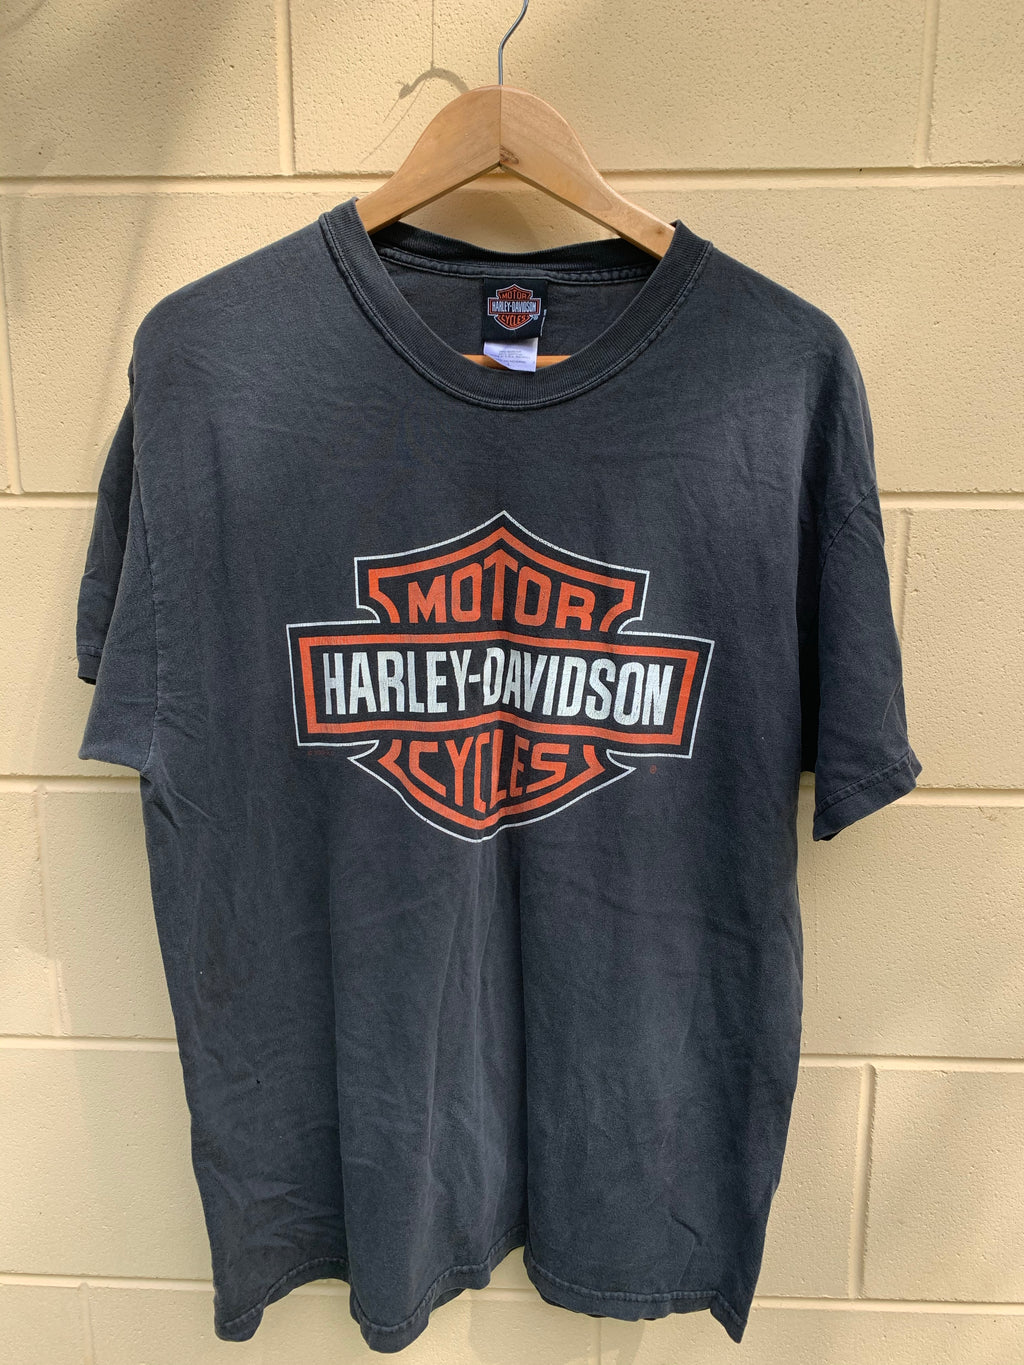 Vintage Harley Davidson T-shirt ✮ Spokane, Washington